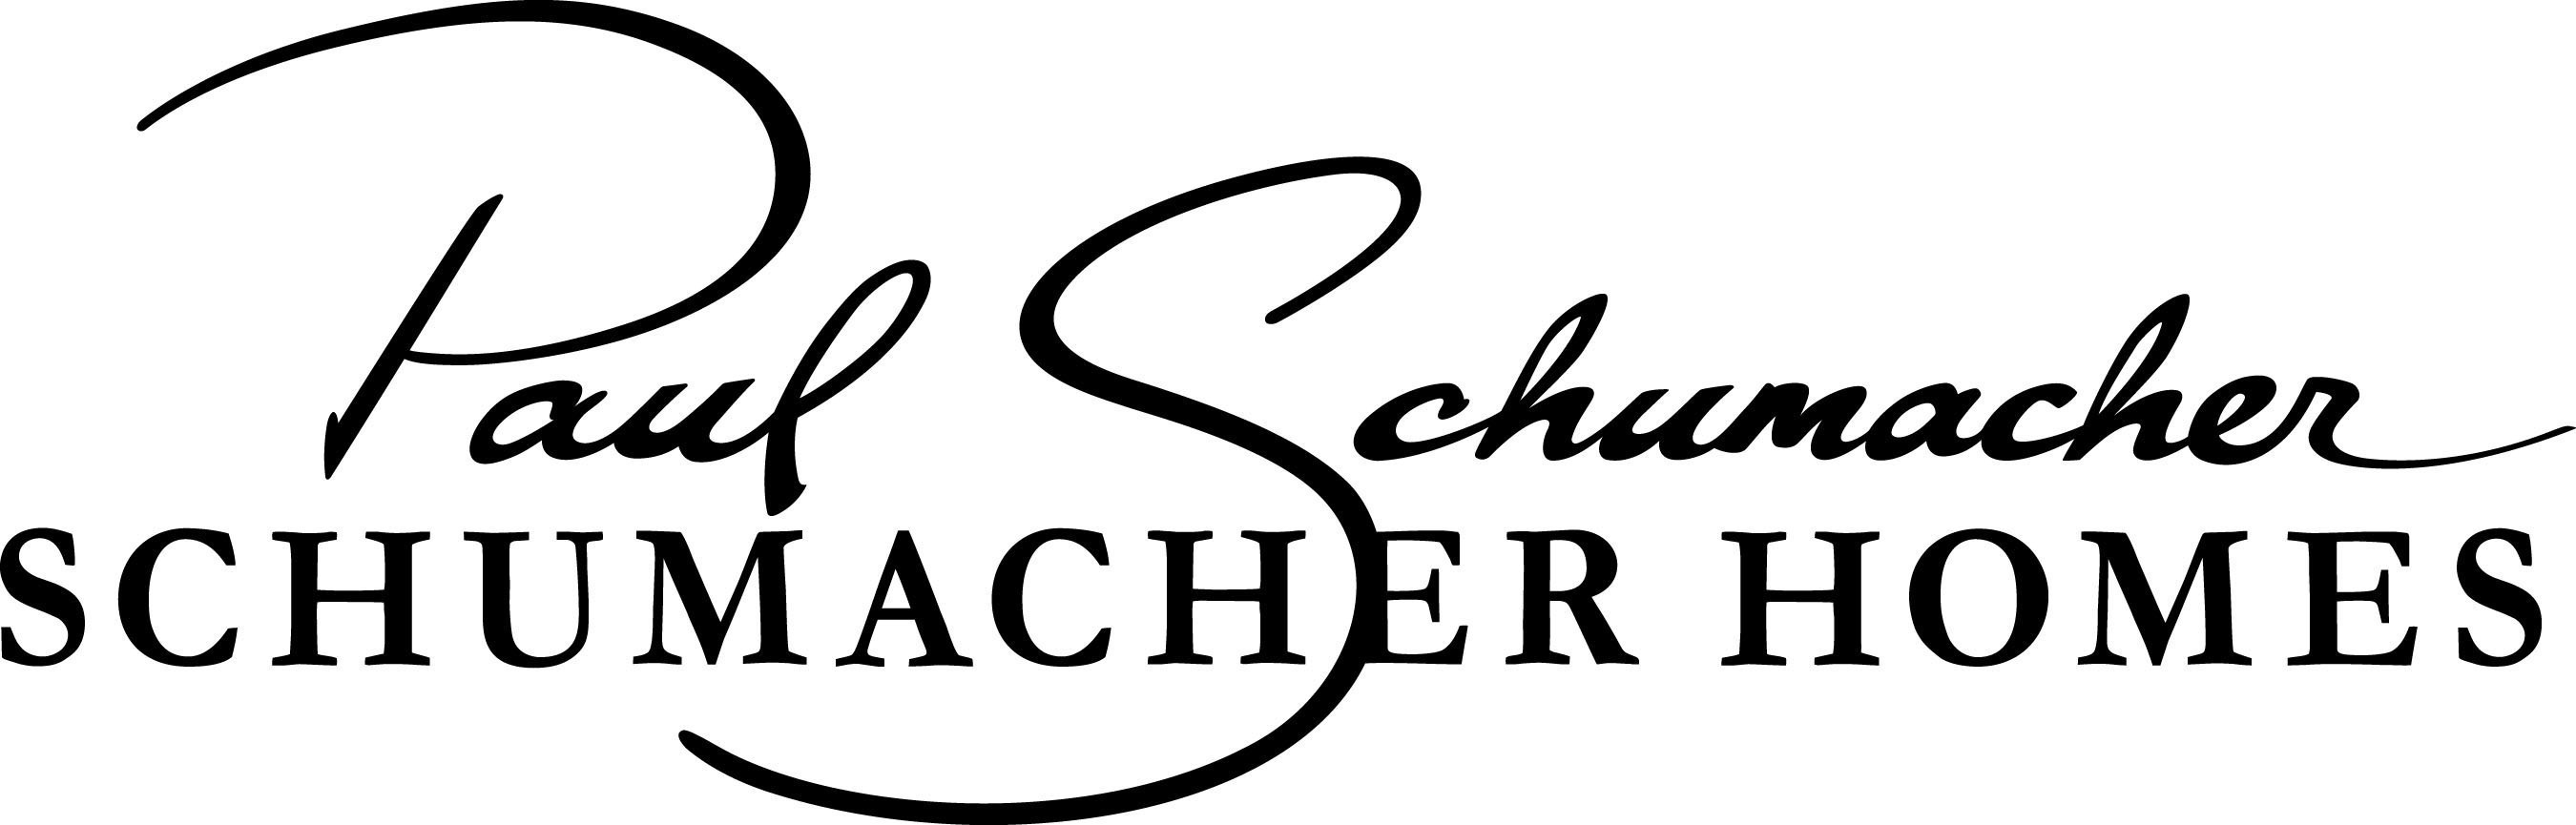 Schumacher Homes logo. Schumacher Homes, based in Canton, Ohio, is America's largest custom homebuilder, ...